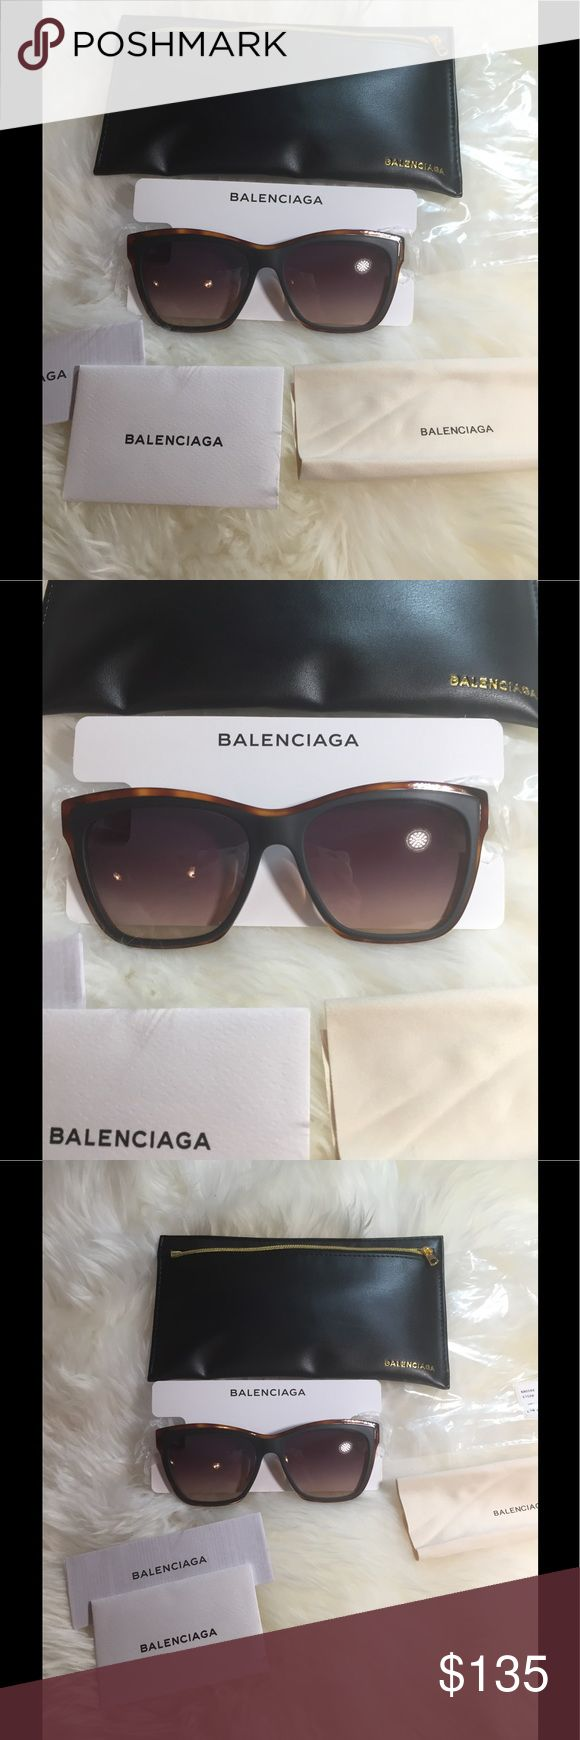 New Authentic Balenciaga Sunglasses New with original package.Original at $360.Price is firm.Two different colors are available. Balenciaga Accessories Glasses